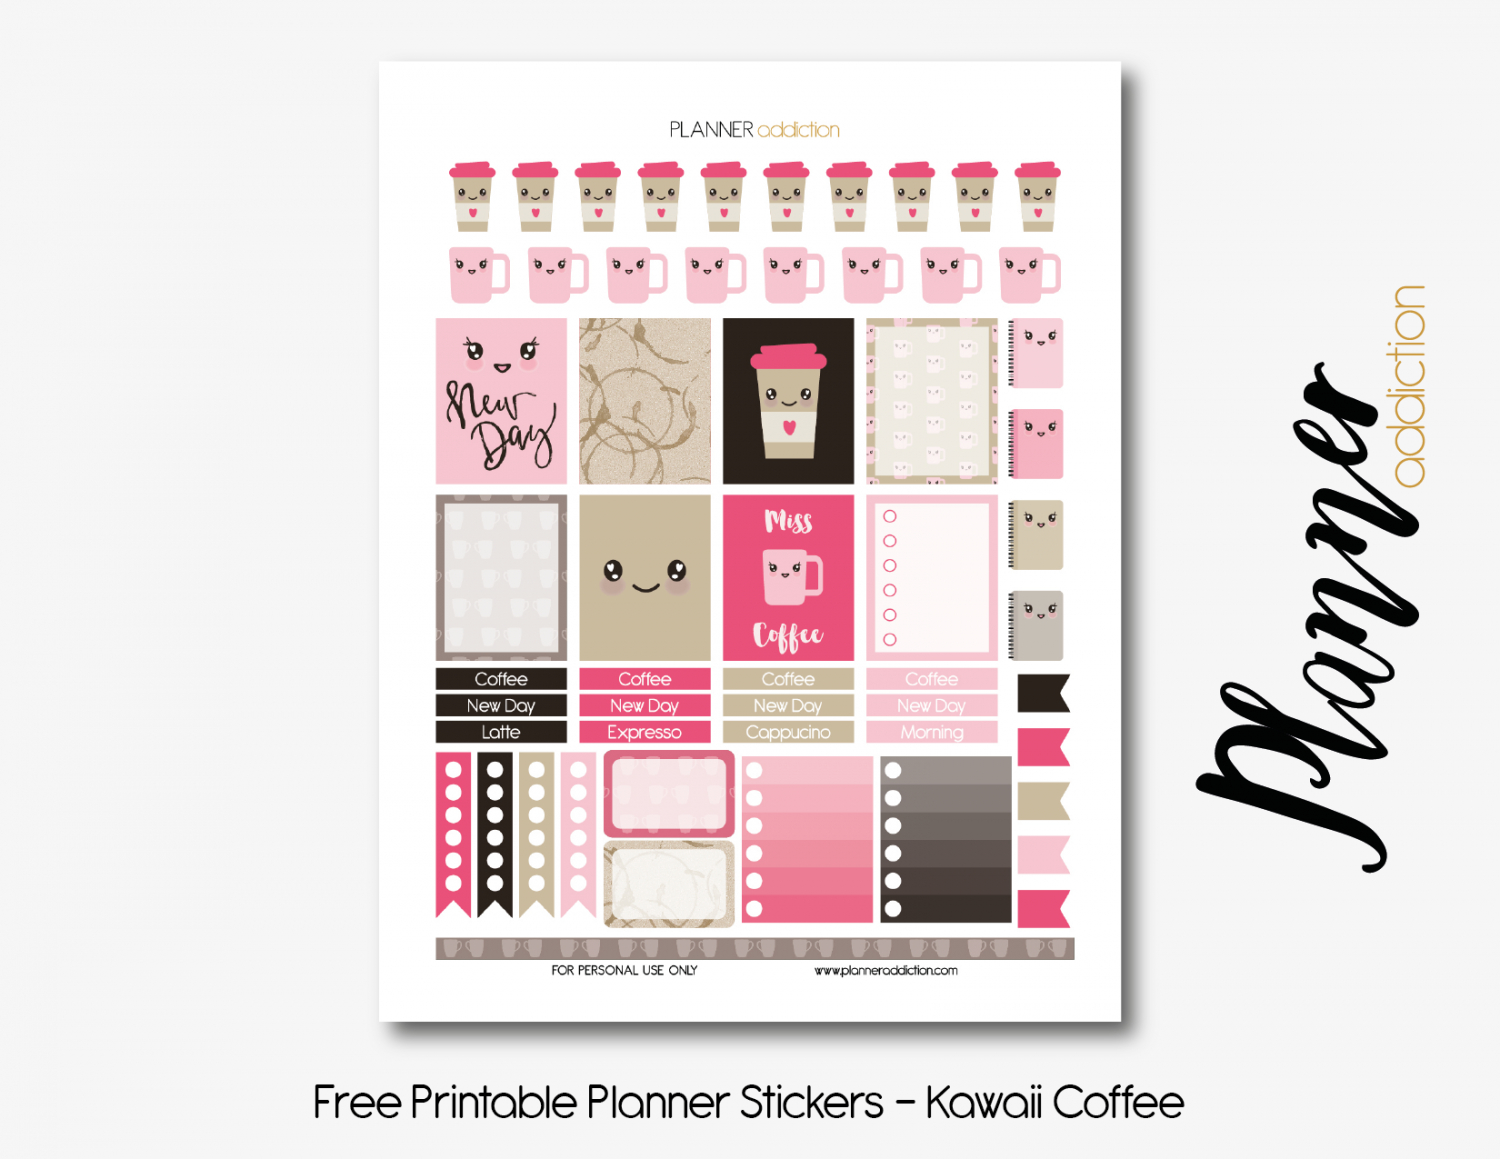 Coffee Kawaii – Planner Addiction - Free Printable Kawaii Stickers